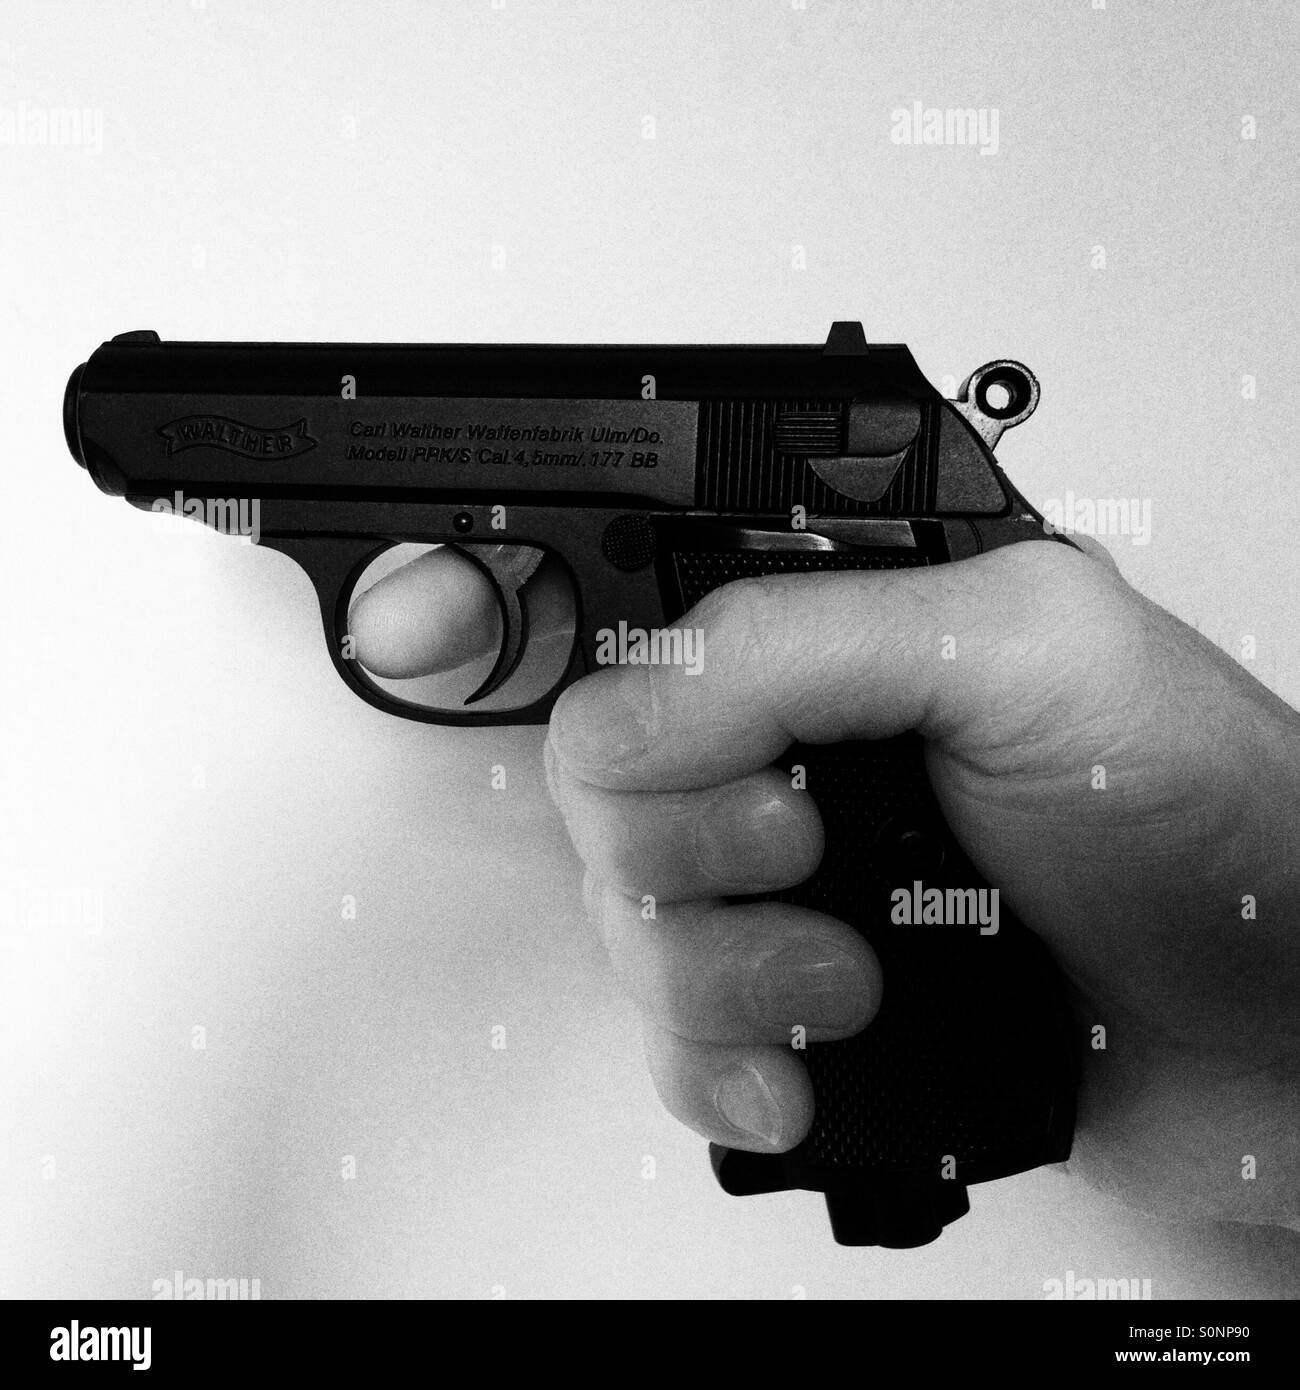 walther ppk pistol stock photos walther ppk pistol stock images